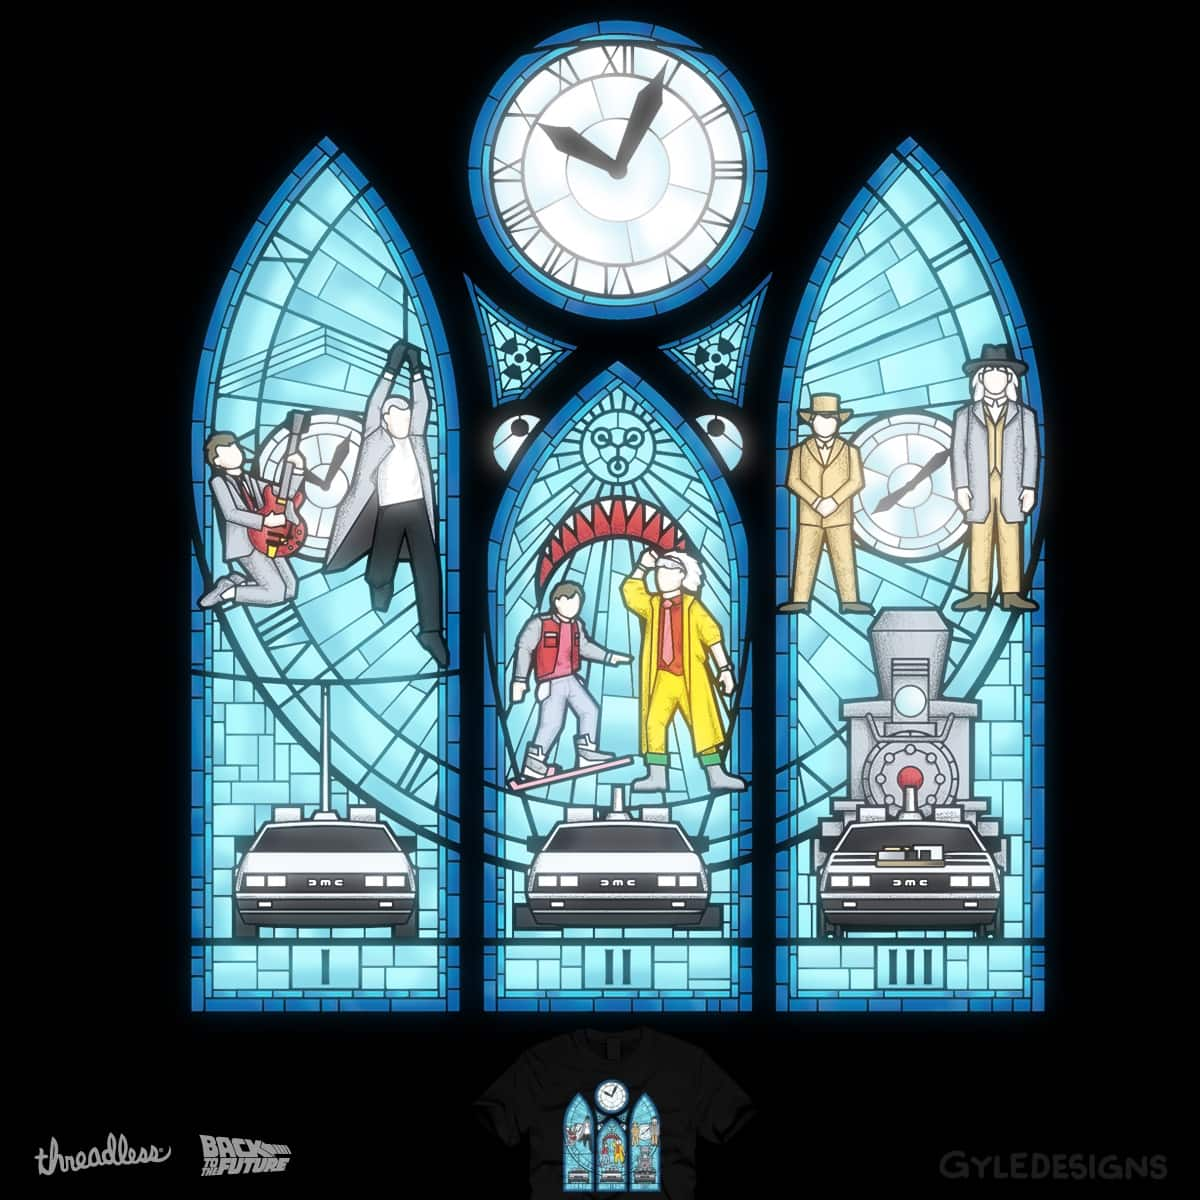 The Prophecy of the Great St. Scott by GyleDesigns on Threadless